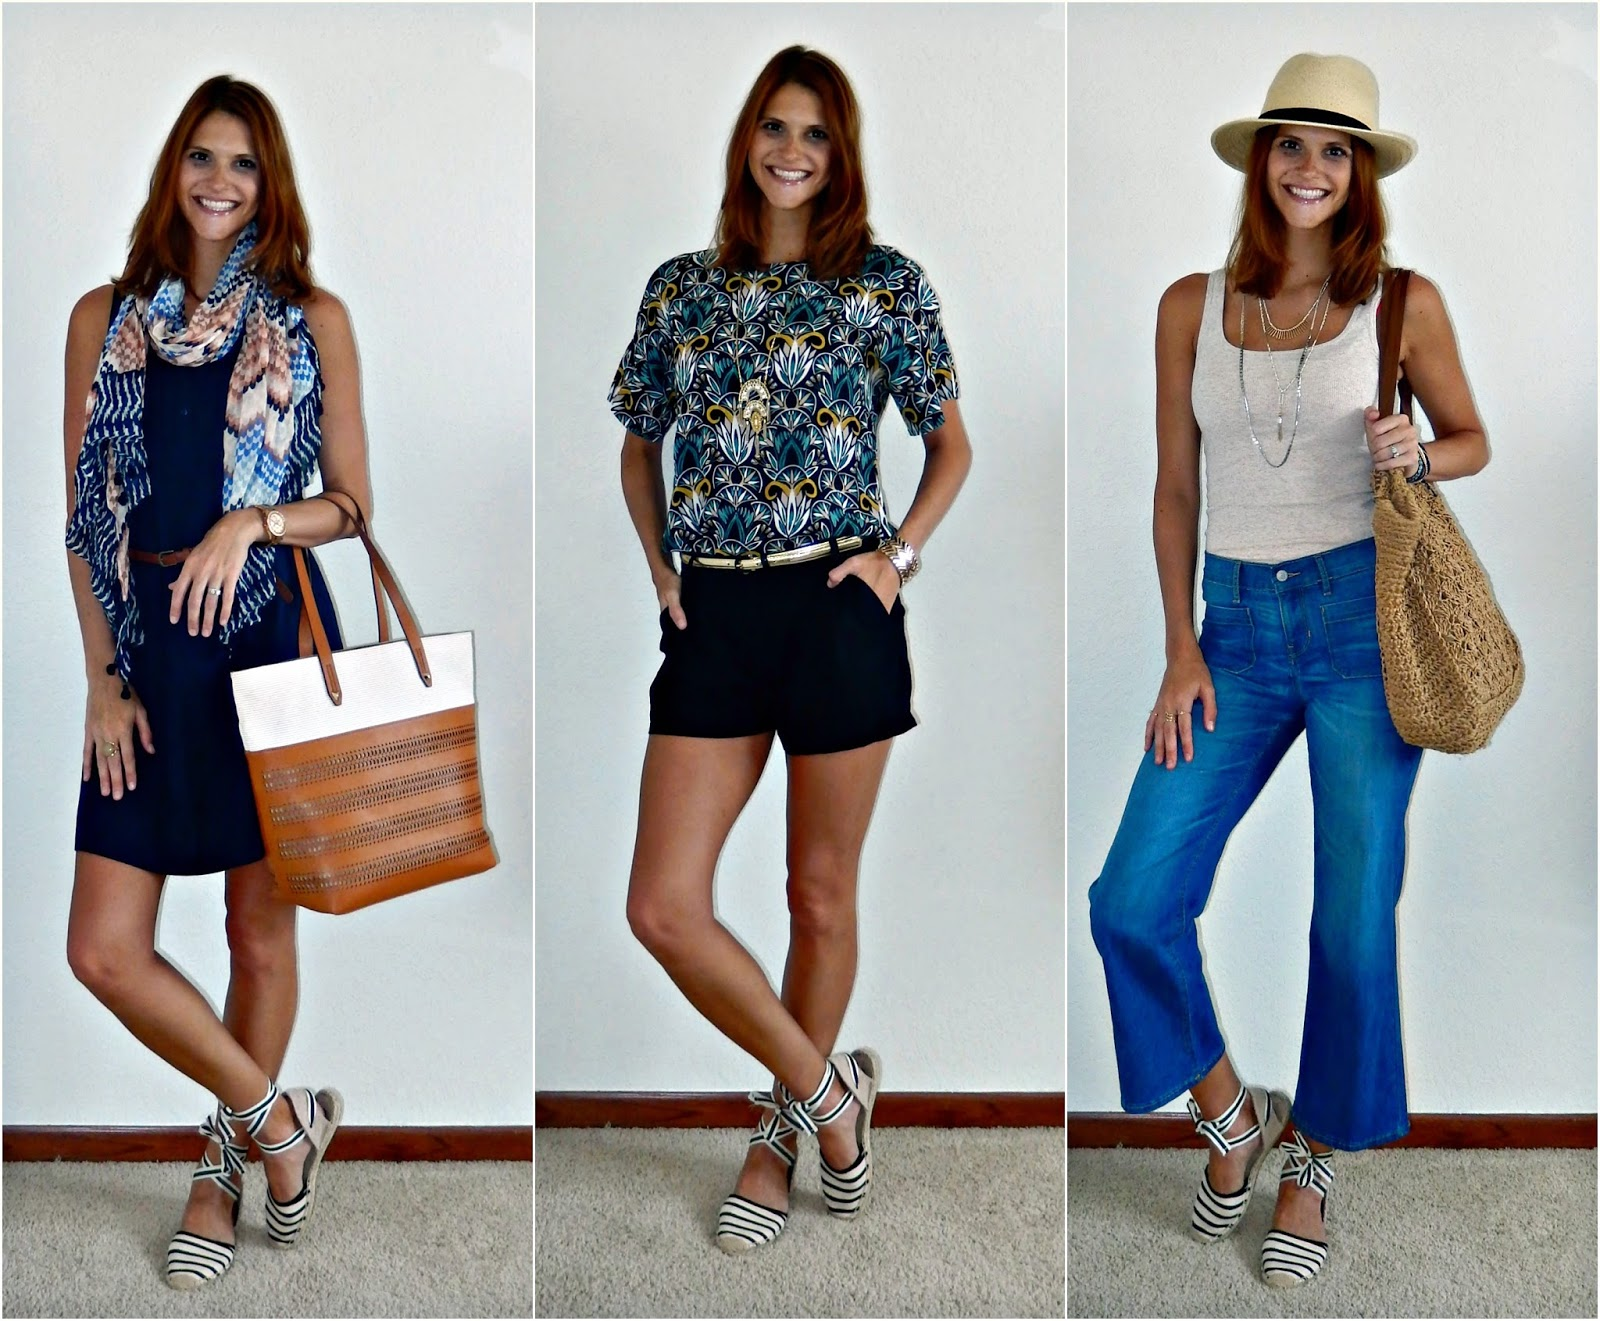 ed5c757852b ... outfits all utilizing my striped lace-up espadrilles that I recently  purchased from Soludos. Also